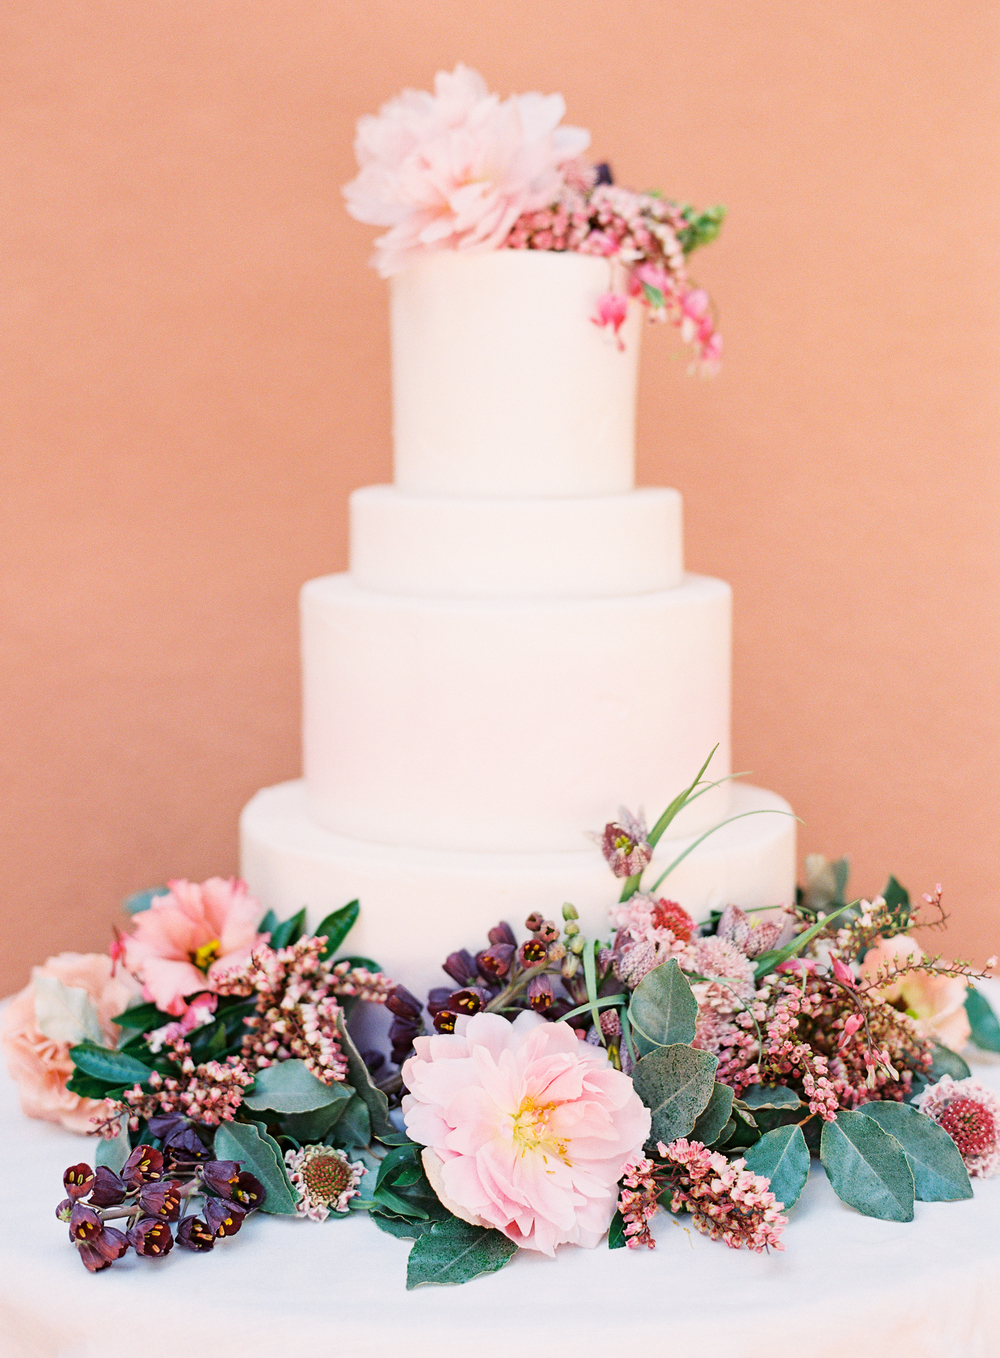 floral wedding cake | terracotta pink wedding inspiration designed by The Wildflowers | follow us on instagram: @ thewildflowers.events